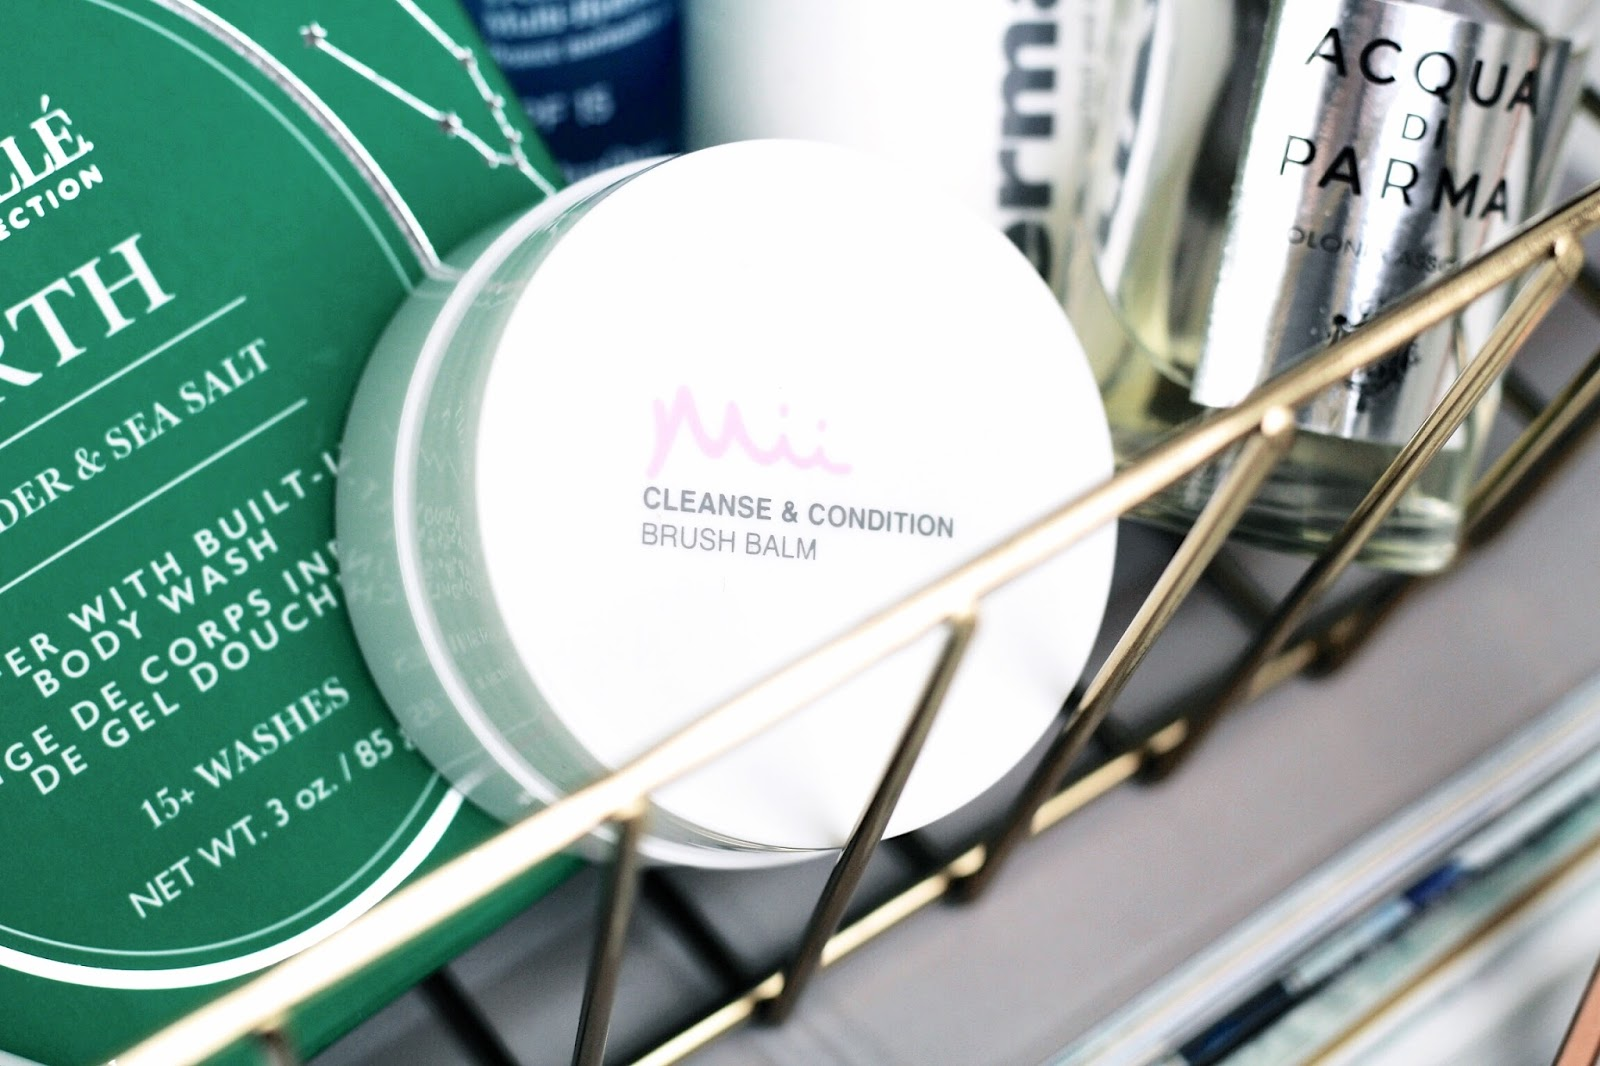 Mii Cosmetics Cleanse & Condition Brush Balm